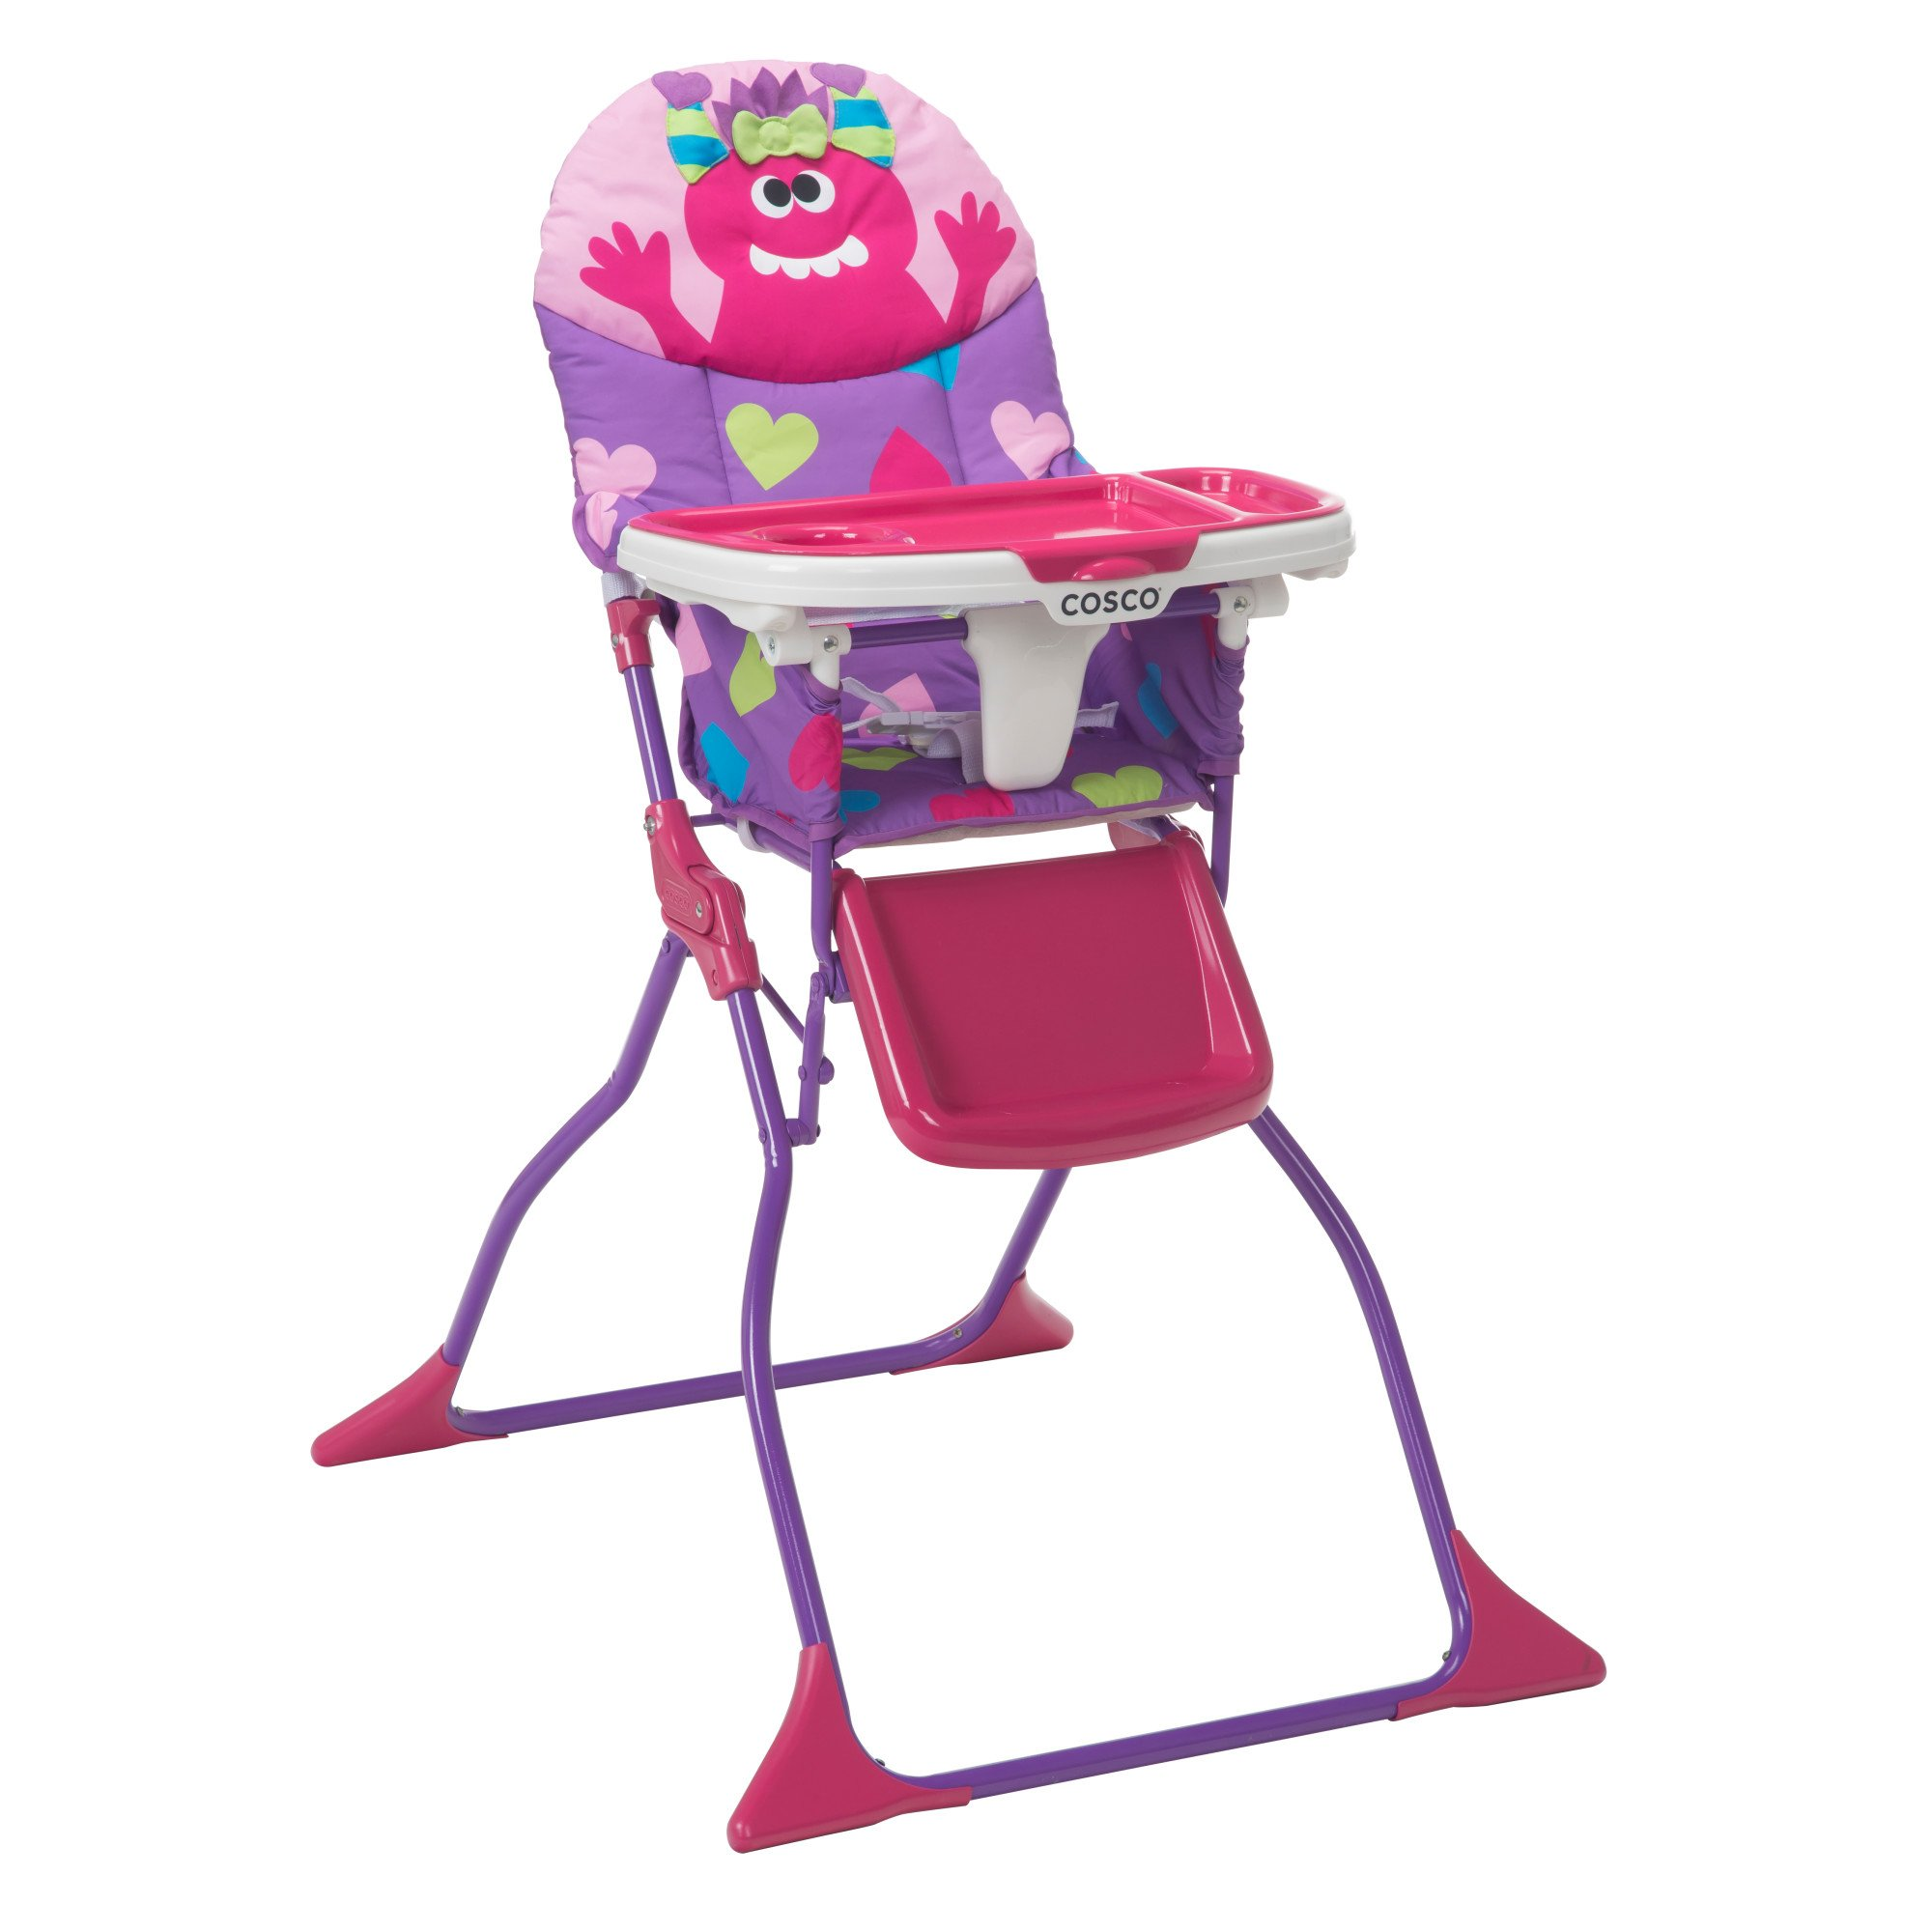 Cosco Simple Fold Deluxe High Chair, Monster Shelley by Cosco